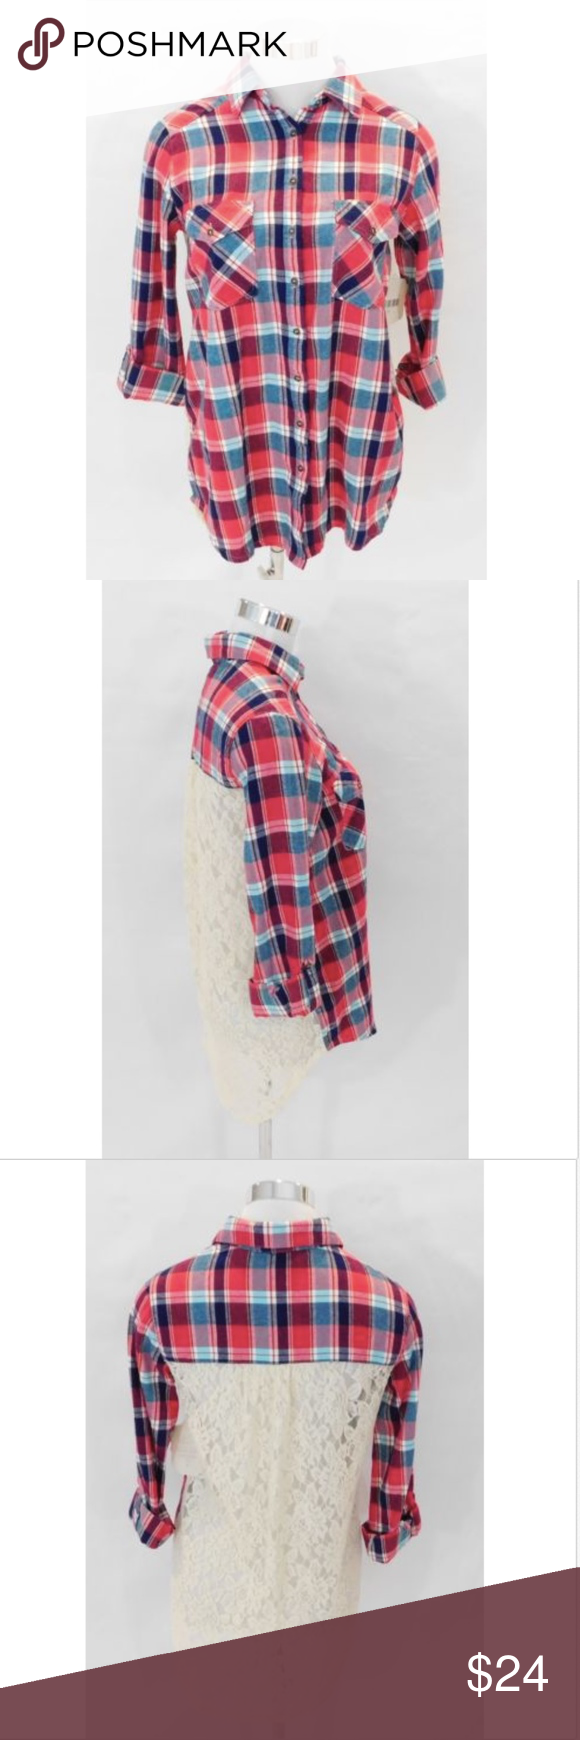 Red flannel shirts  NWT Altarud State Plaid Red Flannel Lace Back S NWT Altarud State